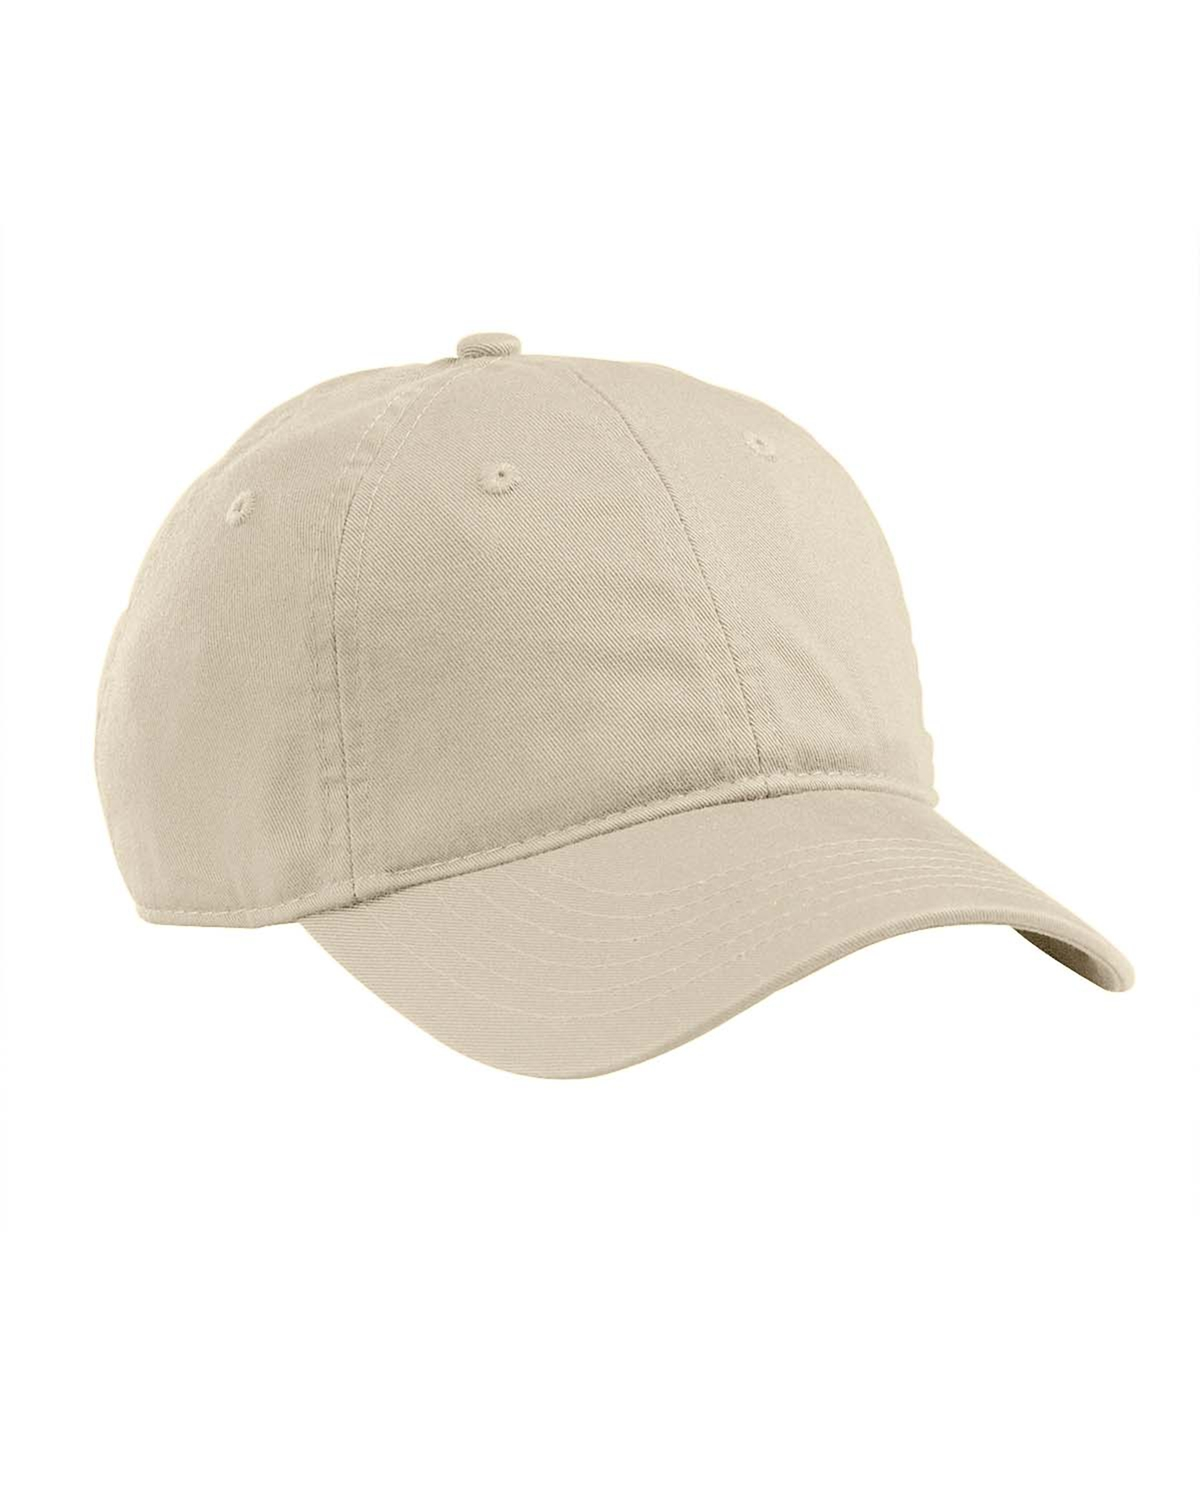 05e7af388 Organic Cotton Baseball Cap - Hats